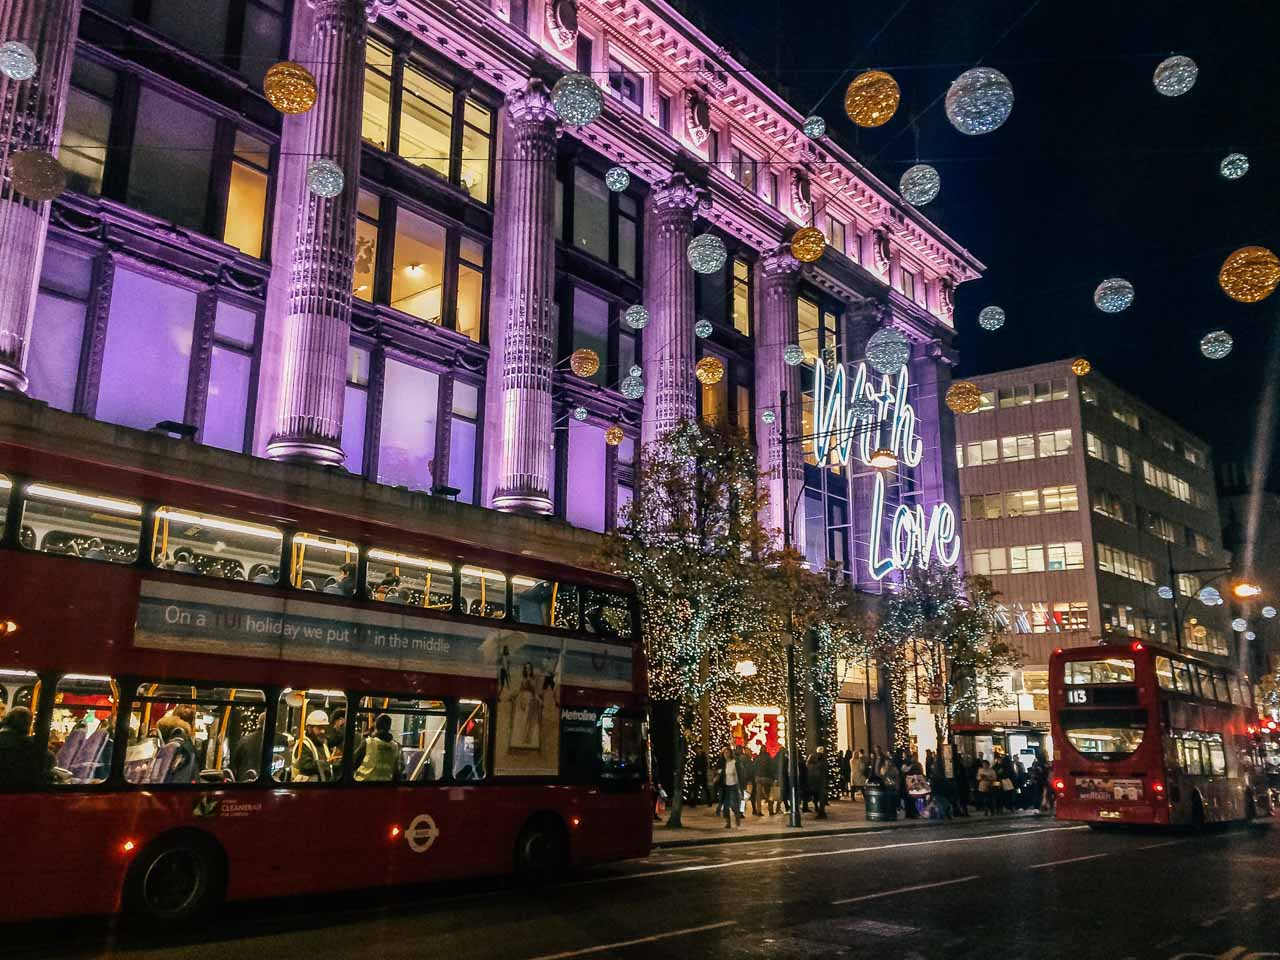 The exterior of Selfridges in London decorated for Christmas and a double-decker bus driving past